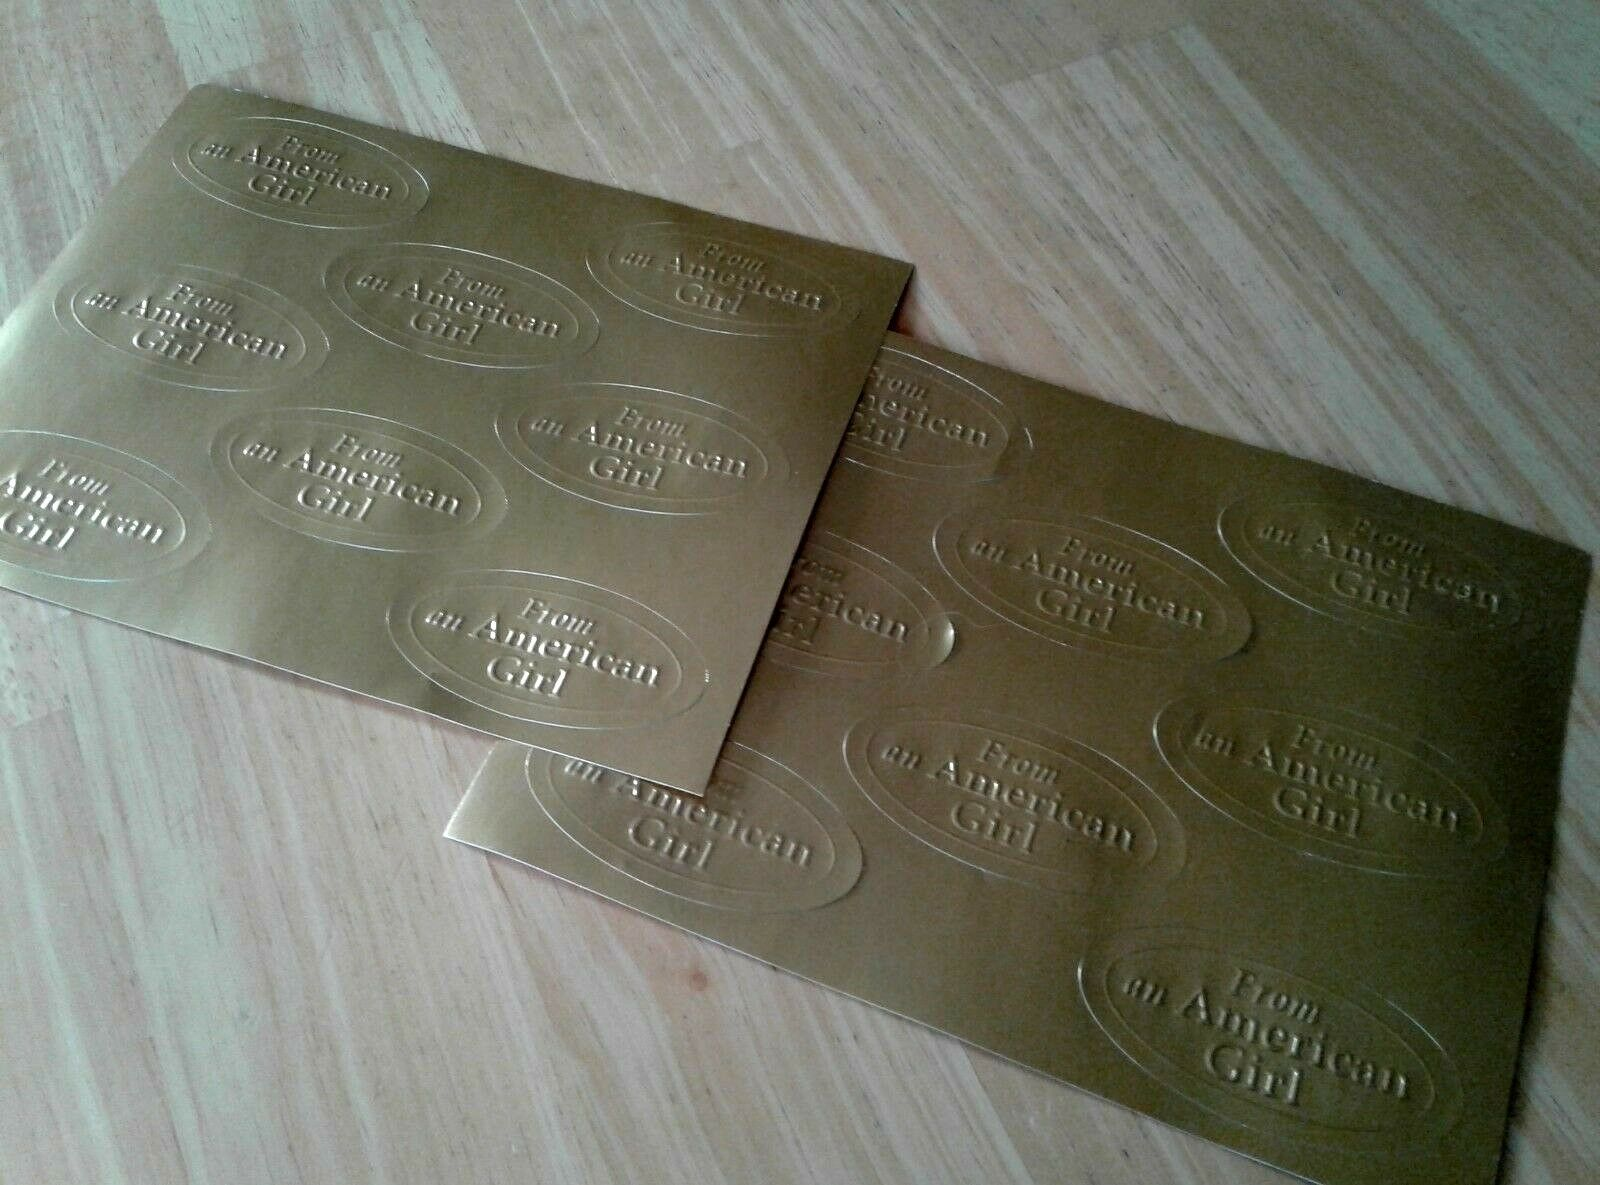 AMERICAN GIRL Gold Stickers From An American Girl 16 Oval Envelope Seals - $6.99